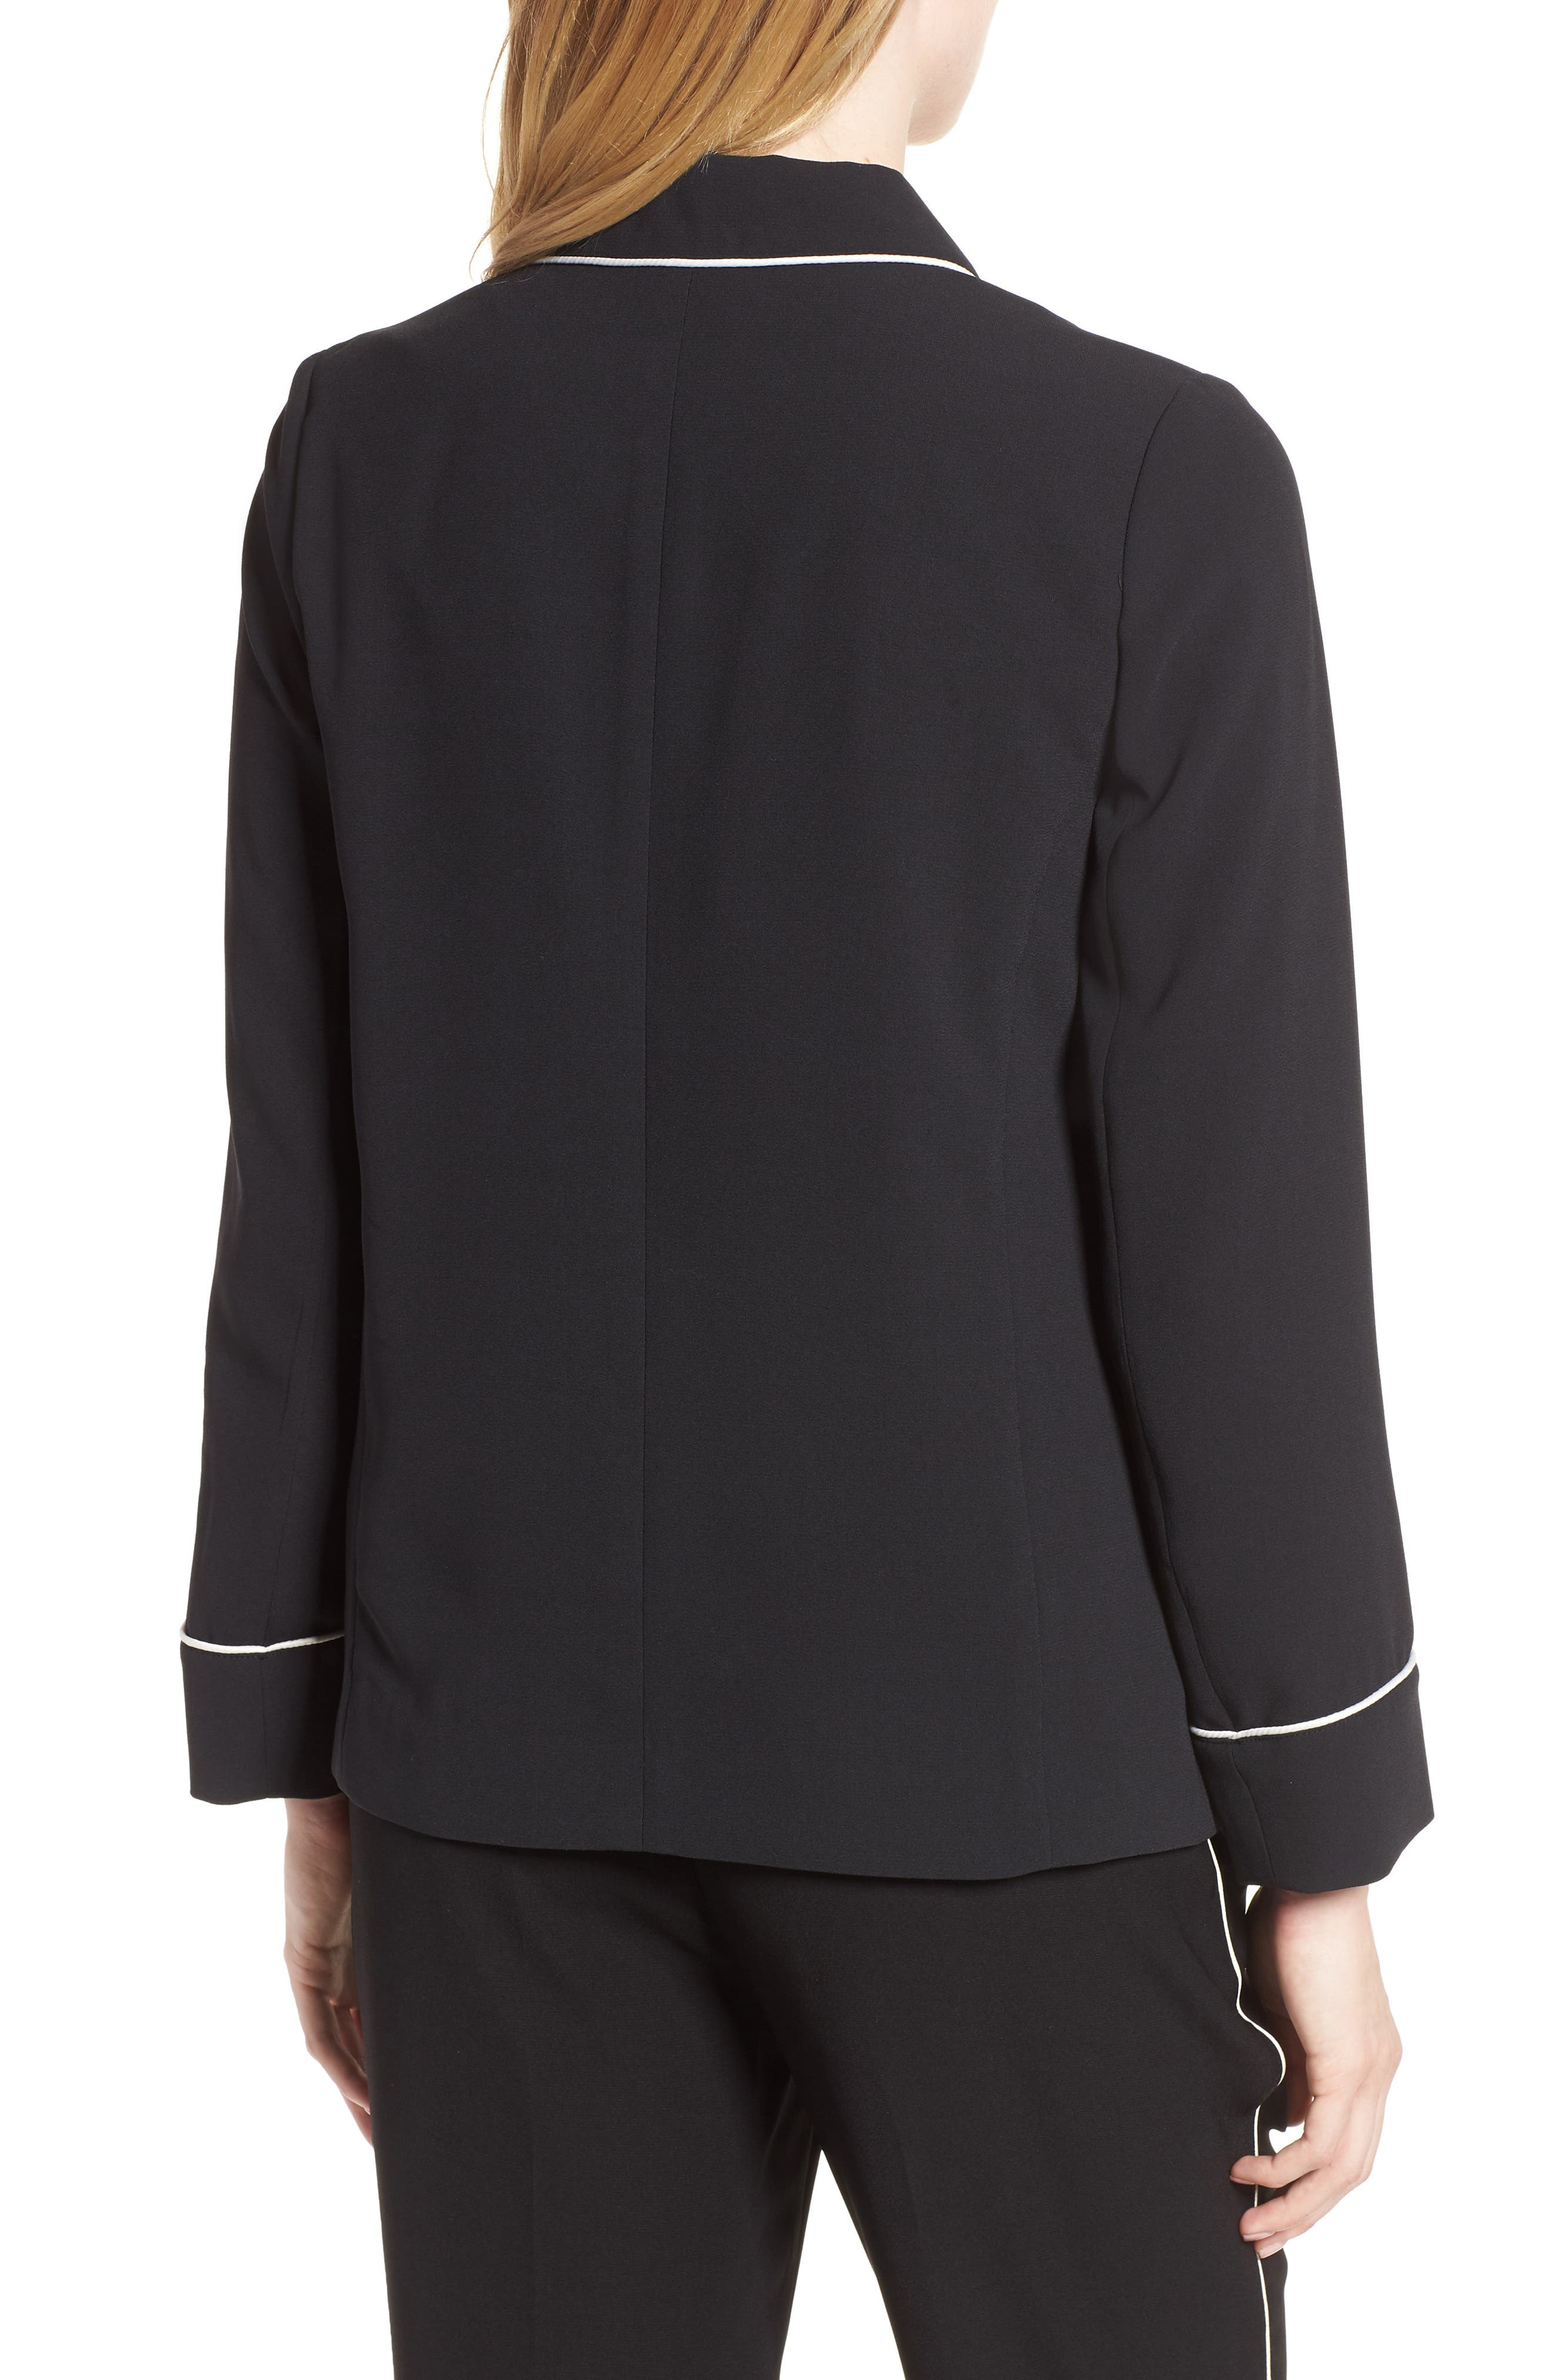 Double Breasted Jacket,                             Alternate thumbnail 2, color,                             Black/ Bright White Piping